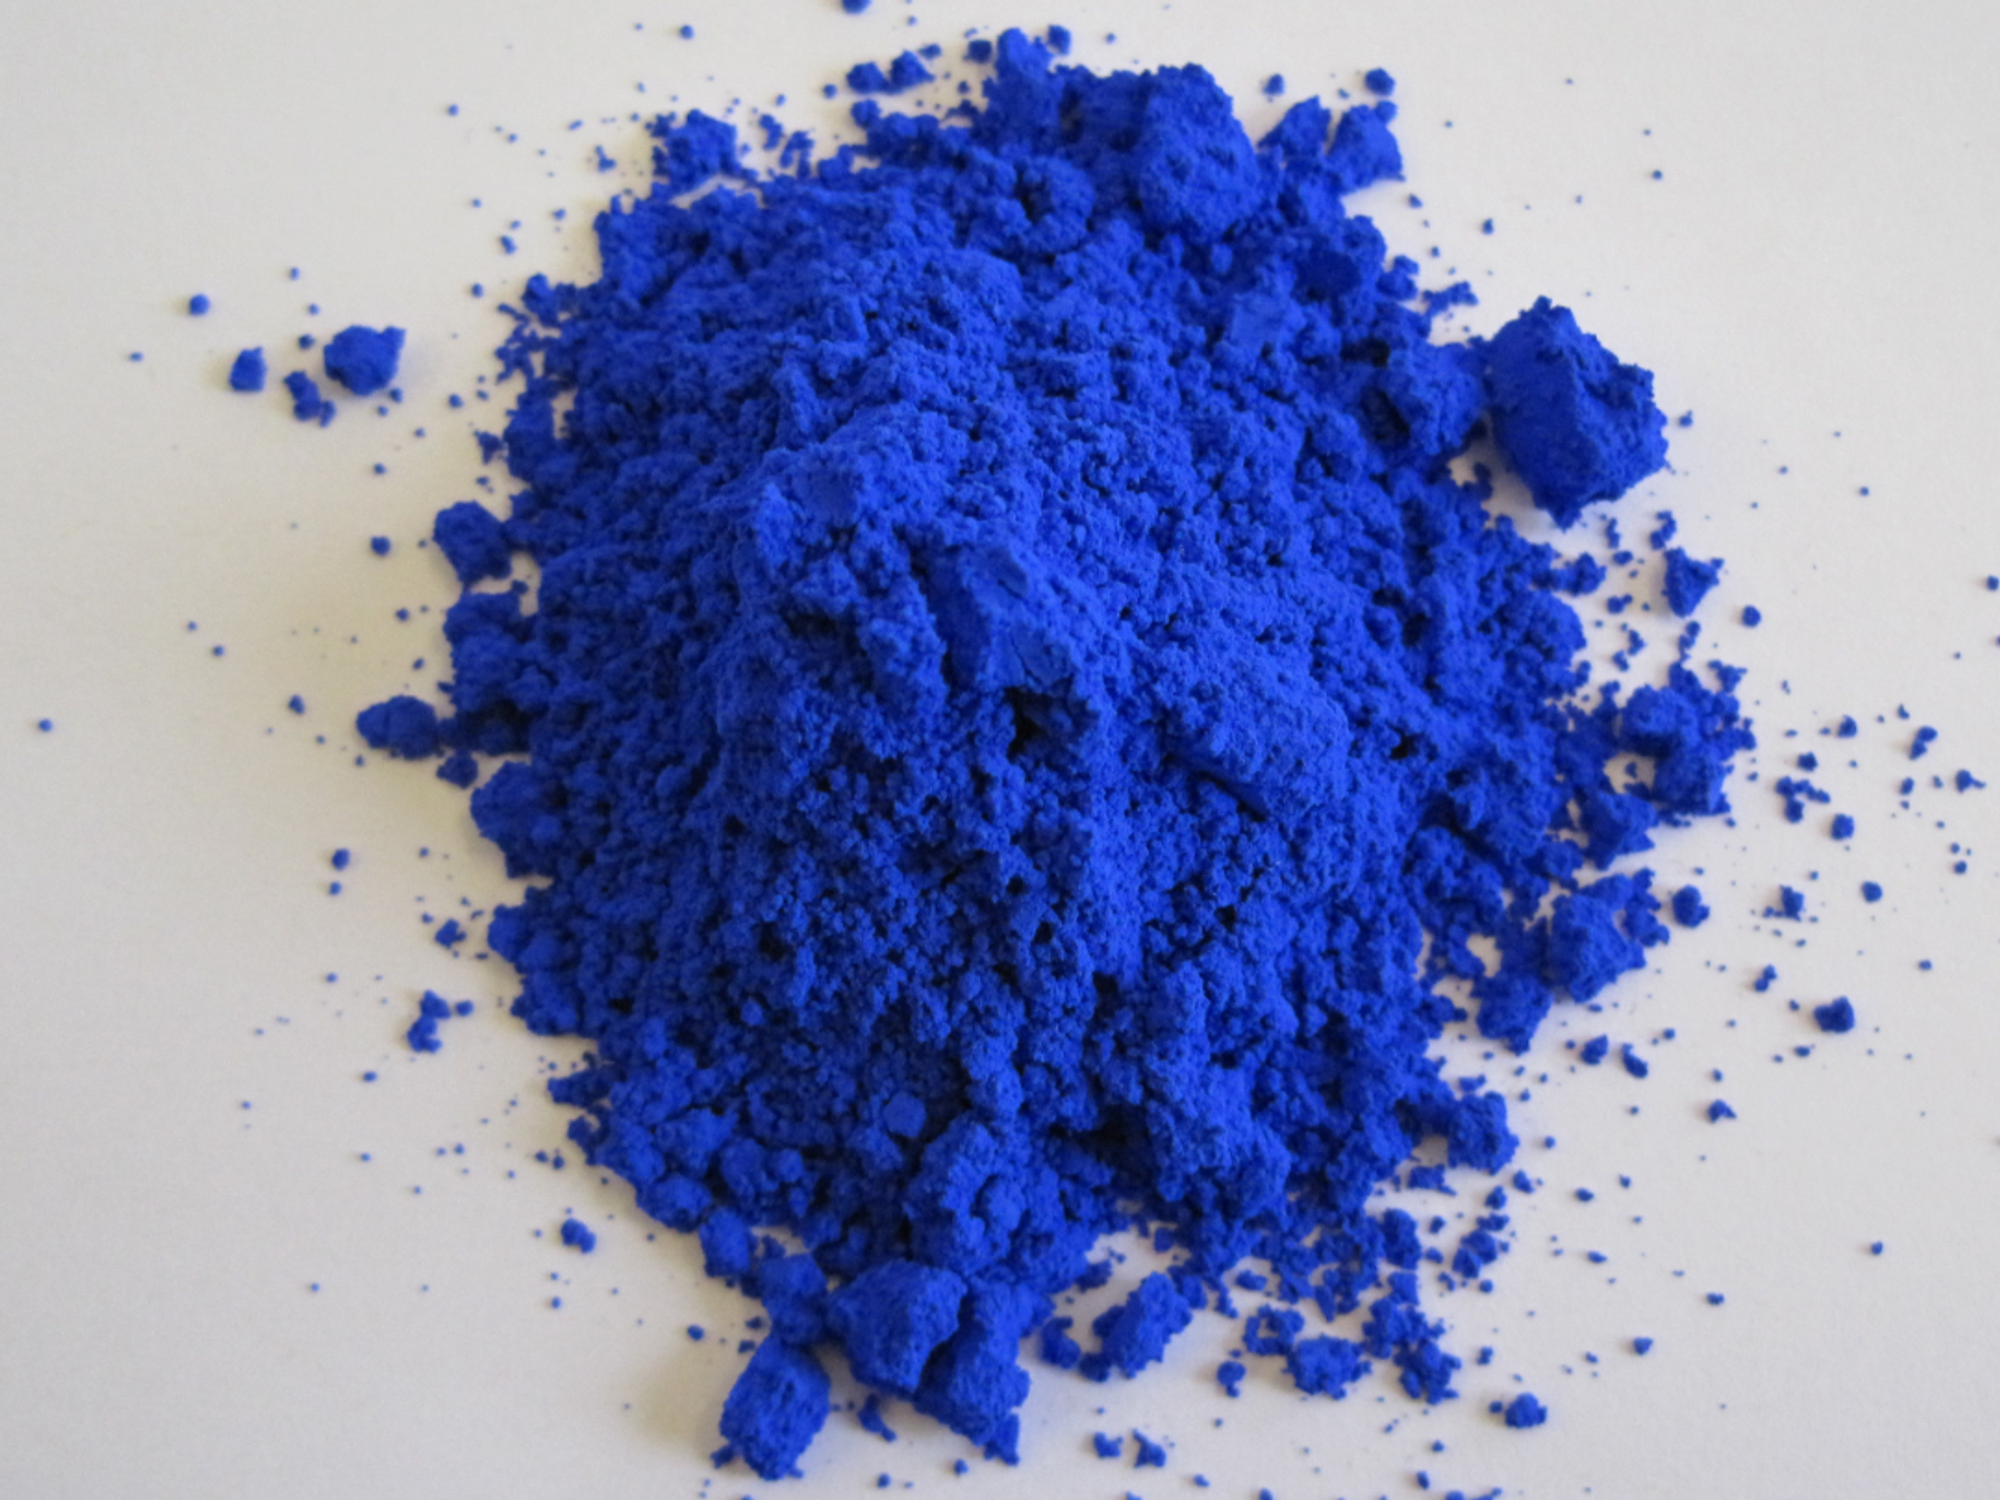 A brand-new blue may be the most eye-popping blue yet